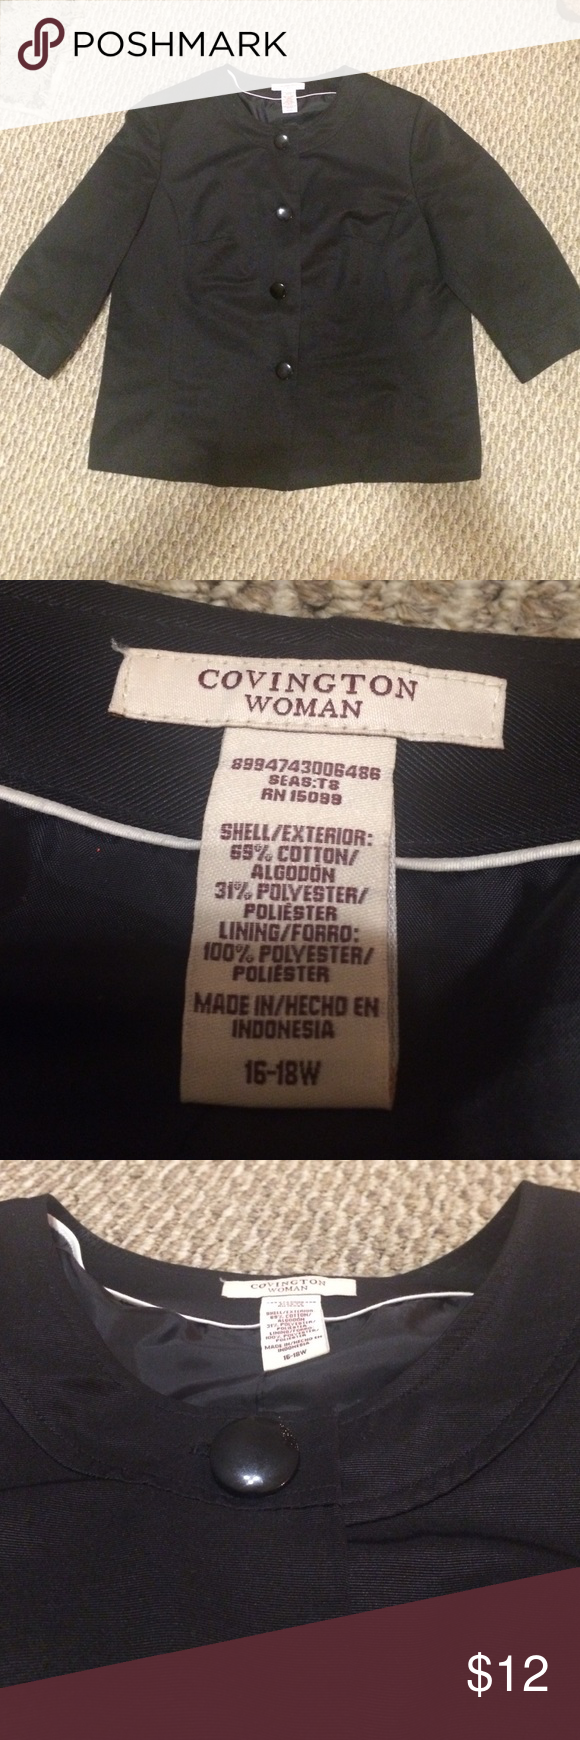 Covington Woman Black Blazer Cotton/Polyester Blend. Great condition. Barely worn. 3/4 Sleeve. Covington Jackets & Coats Blazers